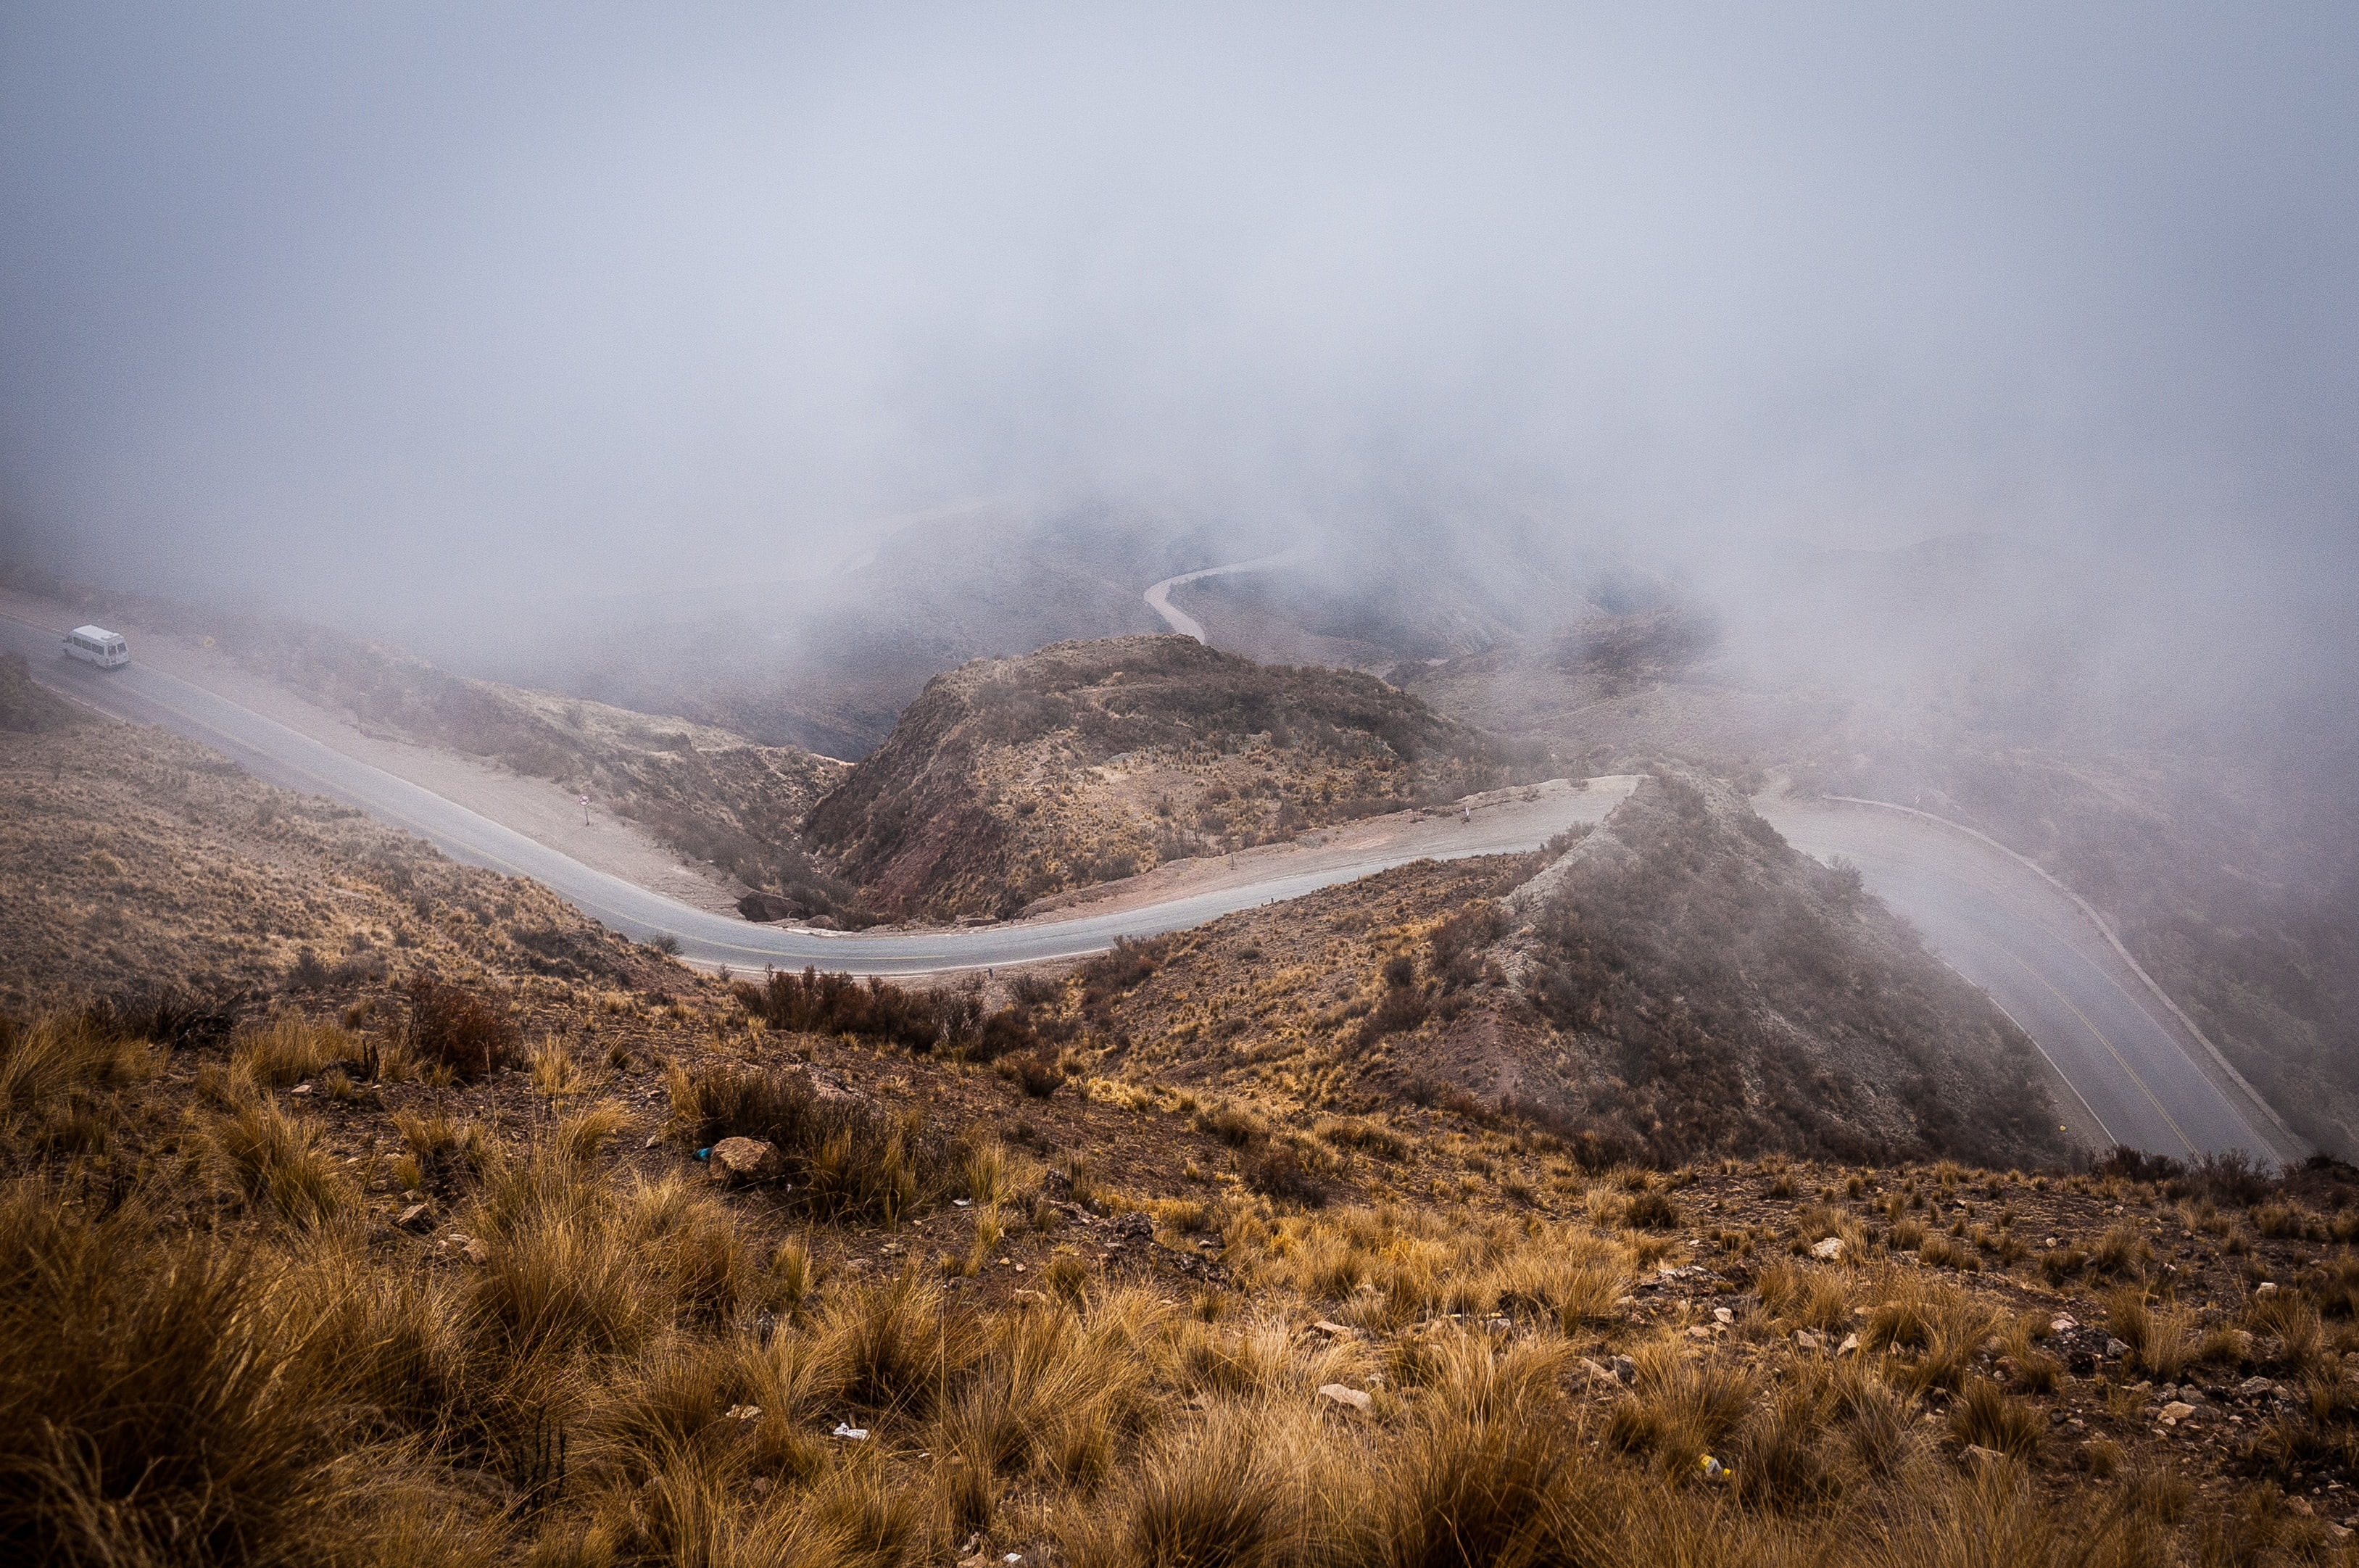 Winding country roads through the misty hills of Parque Nacional Los Cardones